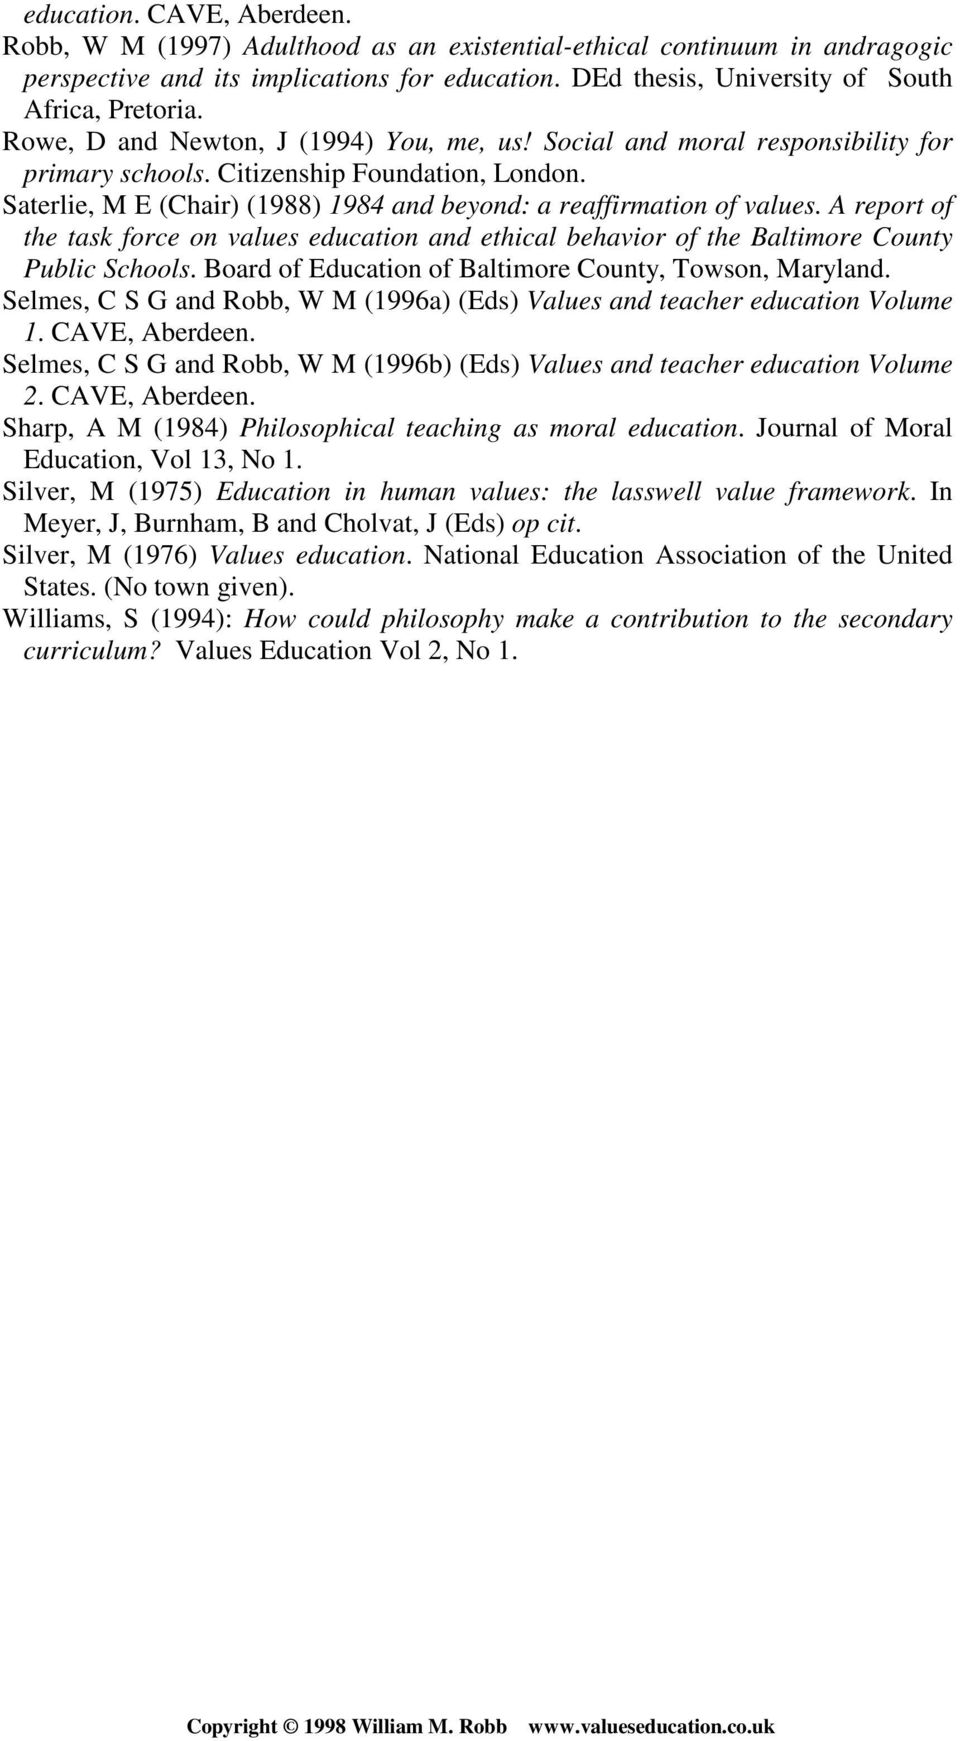 Saterlie, M E (Chair) (1988) 1984 and beyond: a reaffirmation of values. A report of the task force on values education and ethical behavior of the Baltimore County Public Schools.